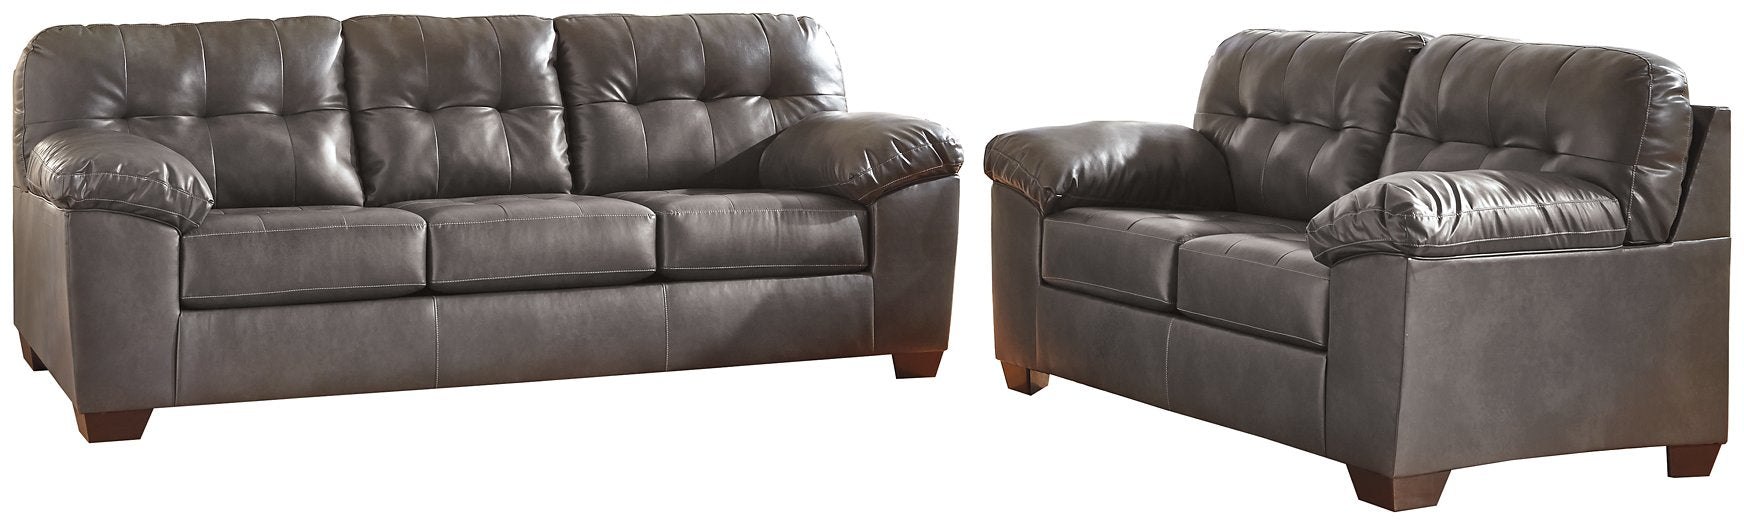 Alliston Signature Design Sofa 2-Piece Upholstery Package